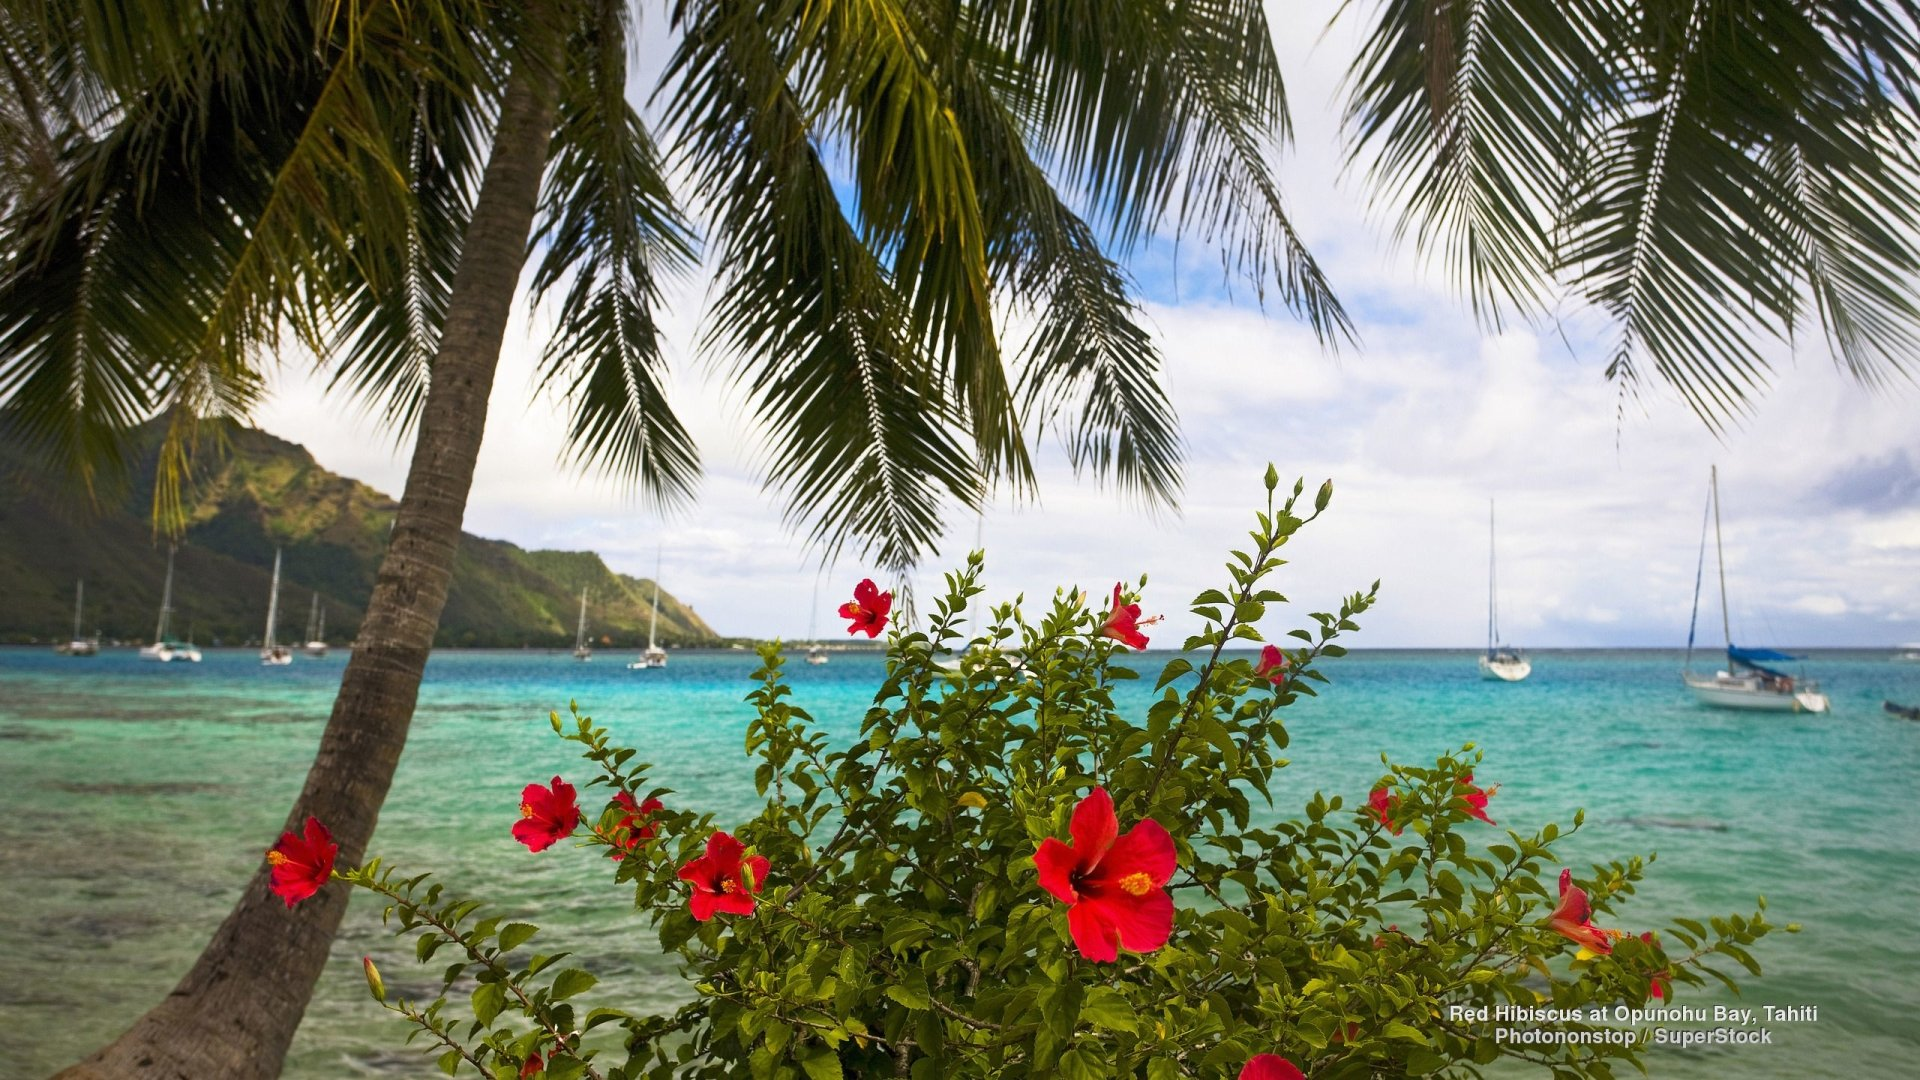 Red hibiscus at opunohu bay tahiti hd wallpaper background image 2560x1440 id 686440 - Hibiscus images download ...